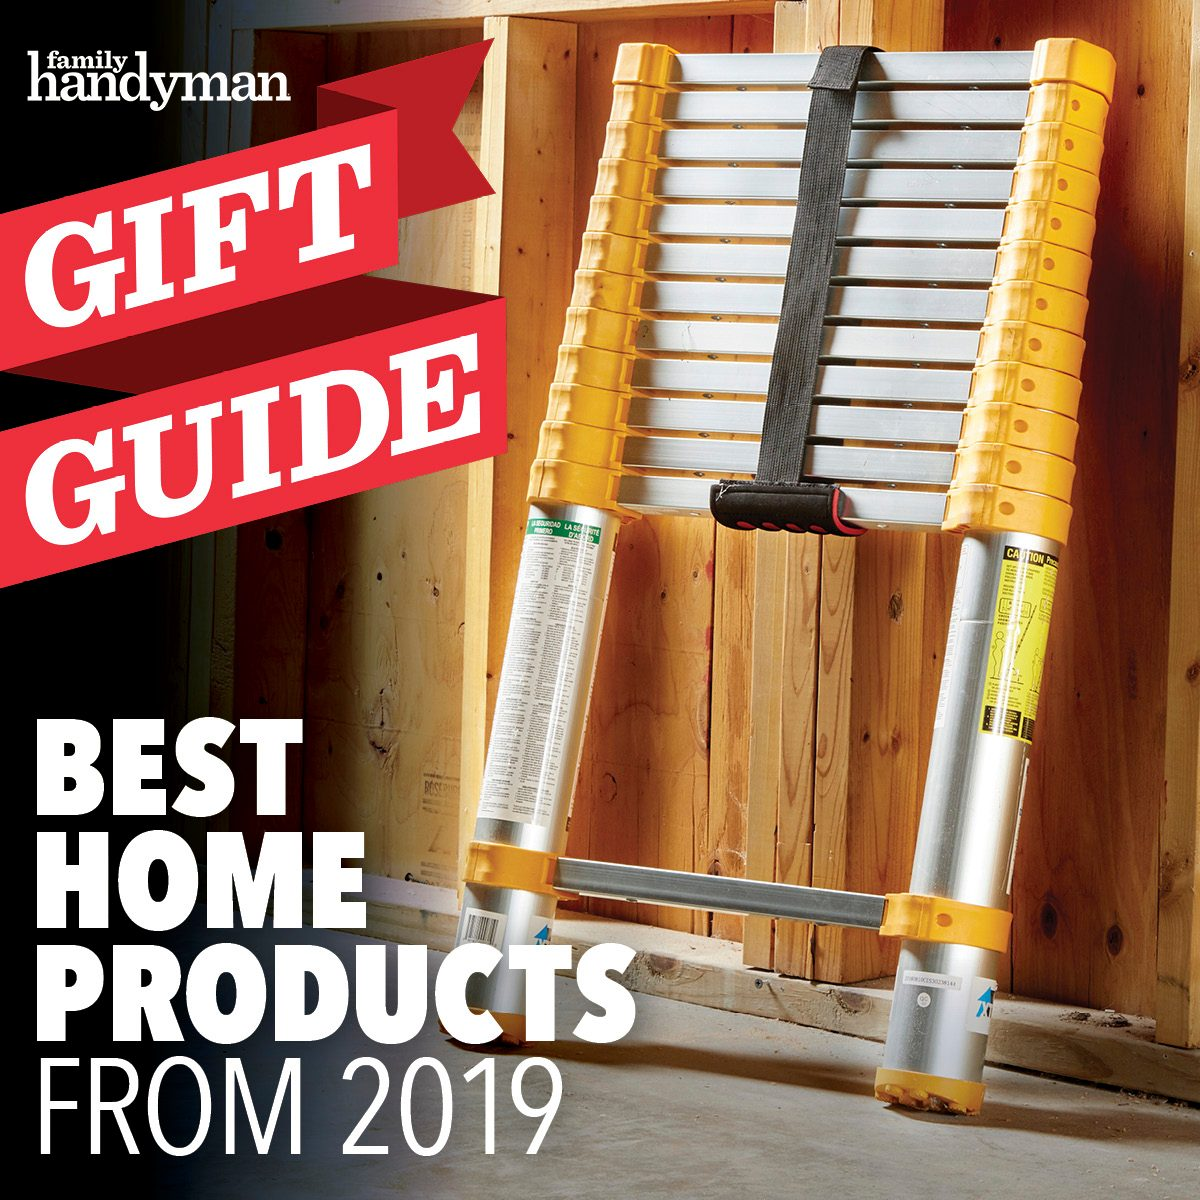 Best home products from 2019